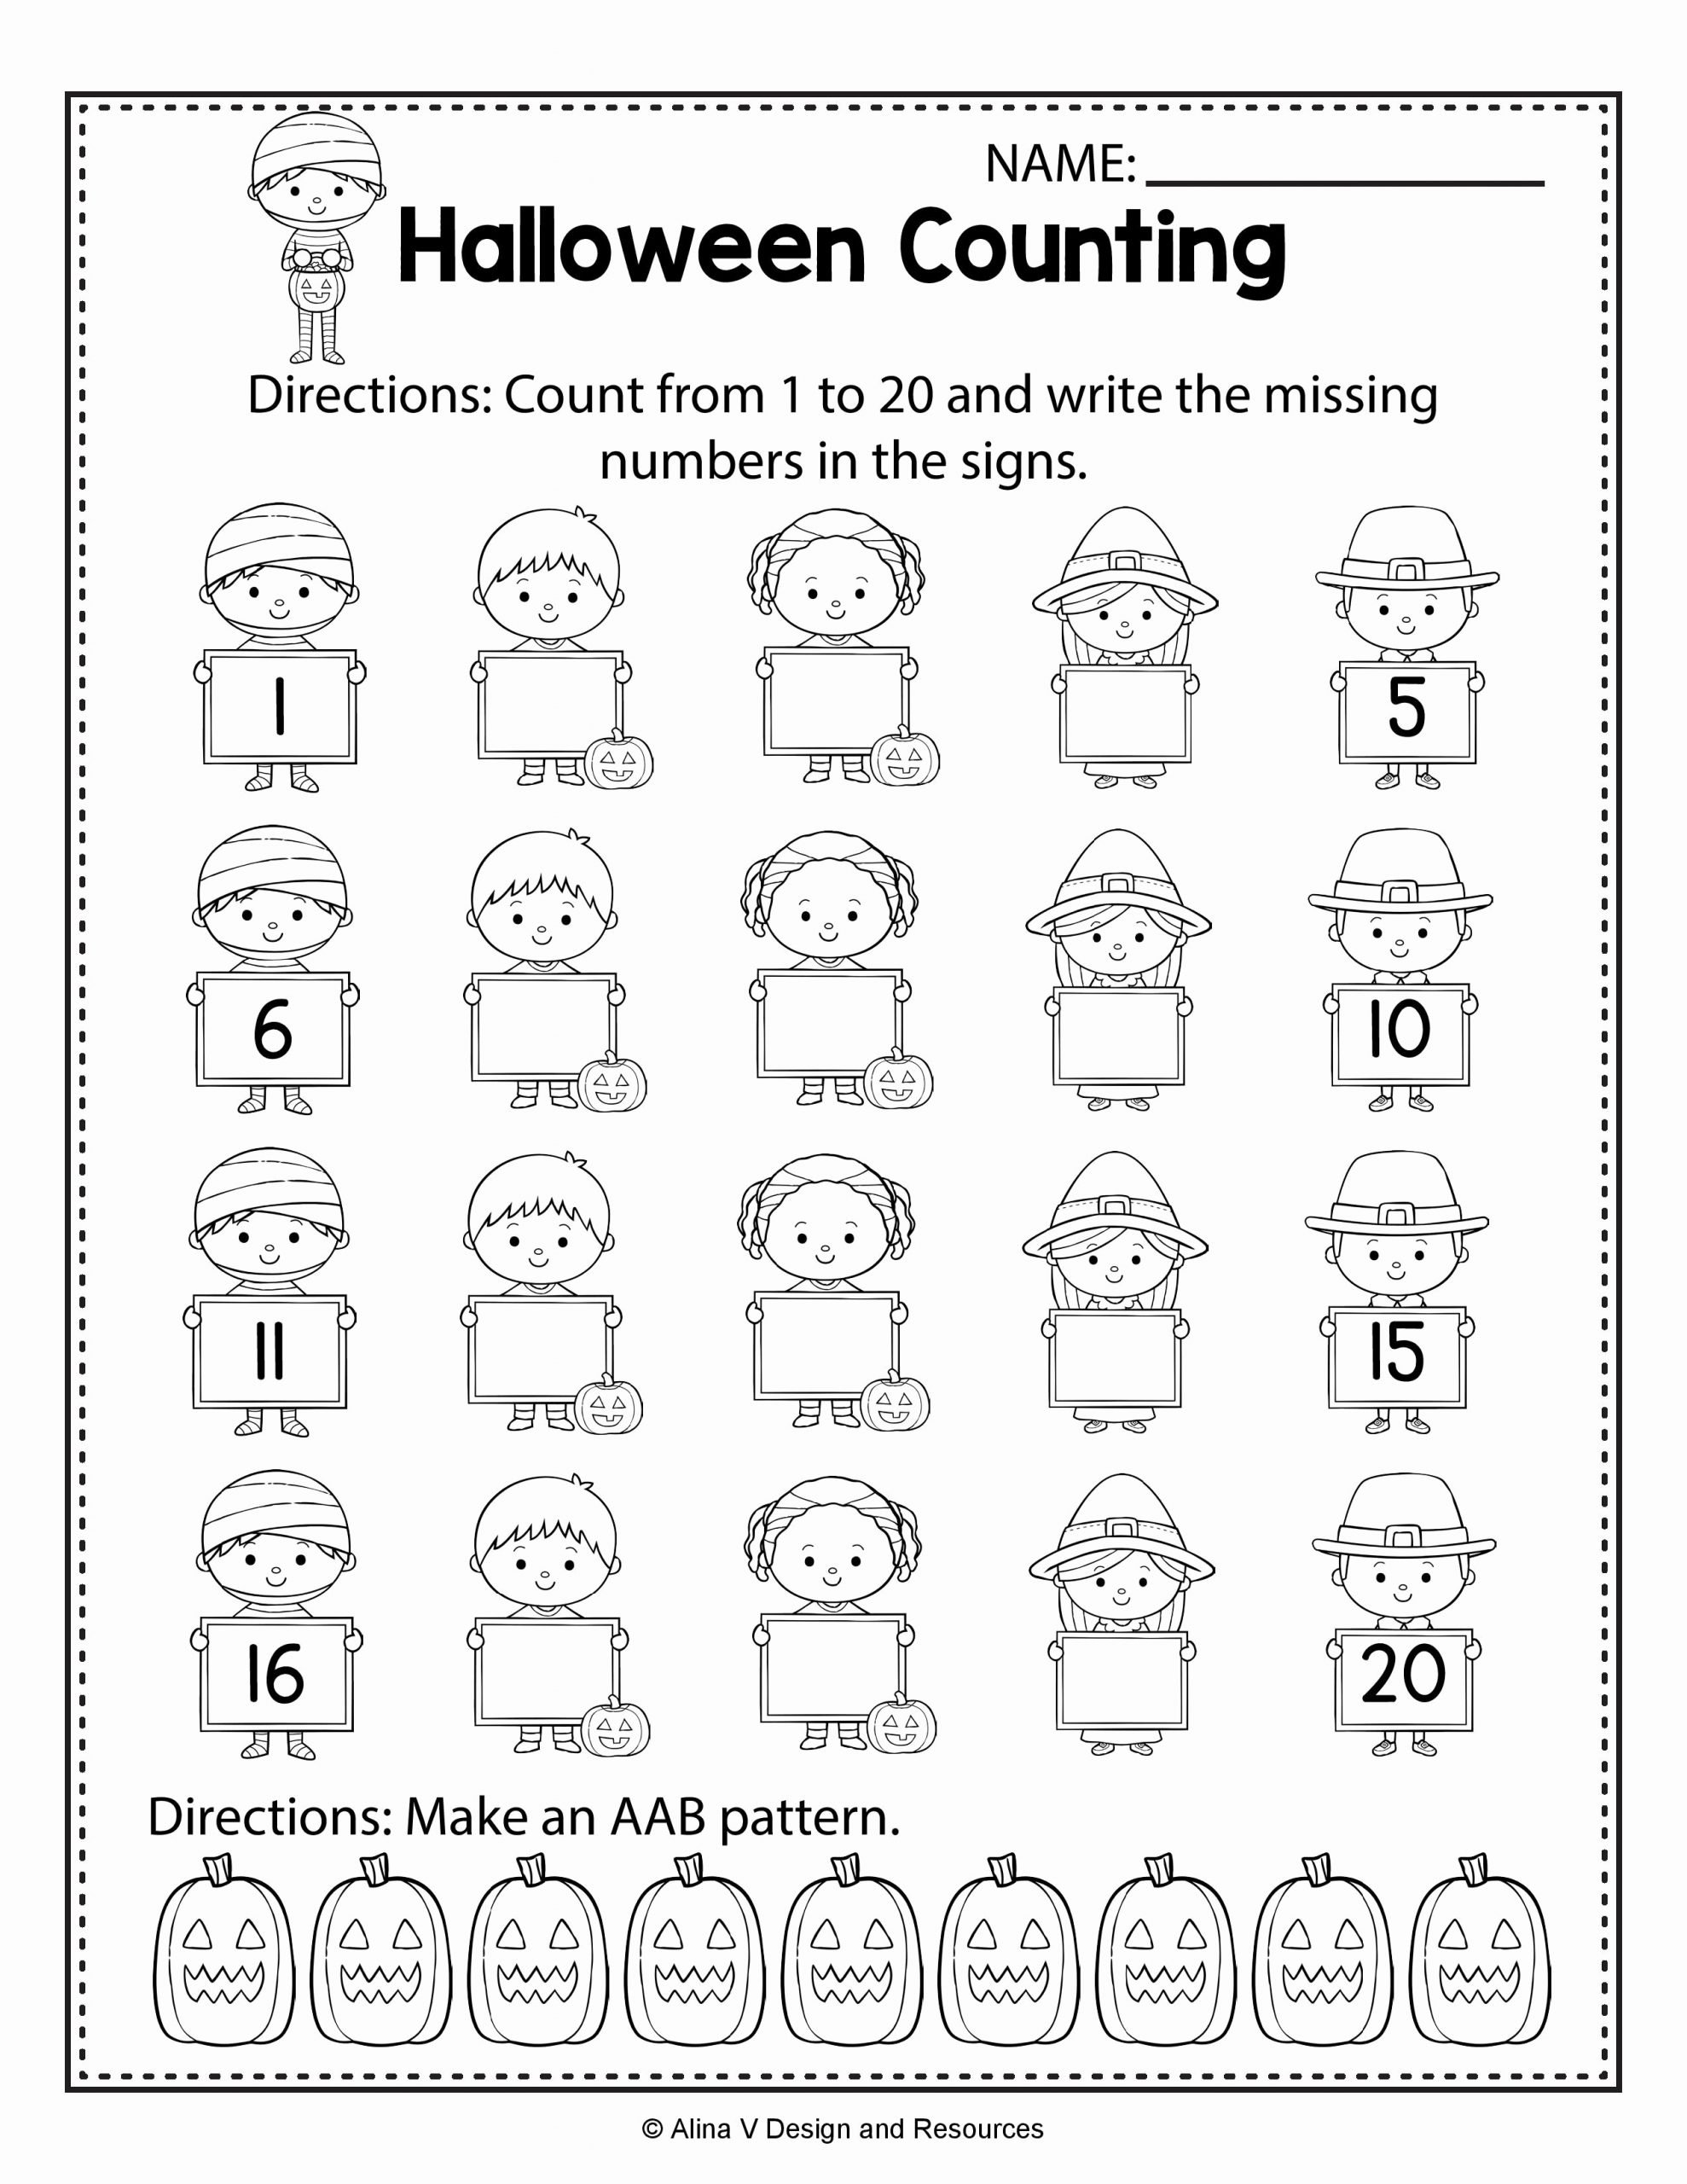 Halloween Counting Worksheets for Preschoolers Fresh Halloween Counting Math Worksheets and Activities for